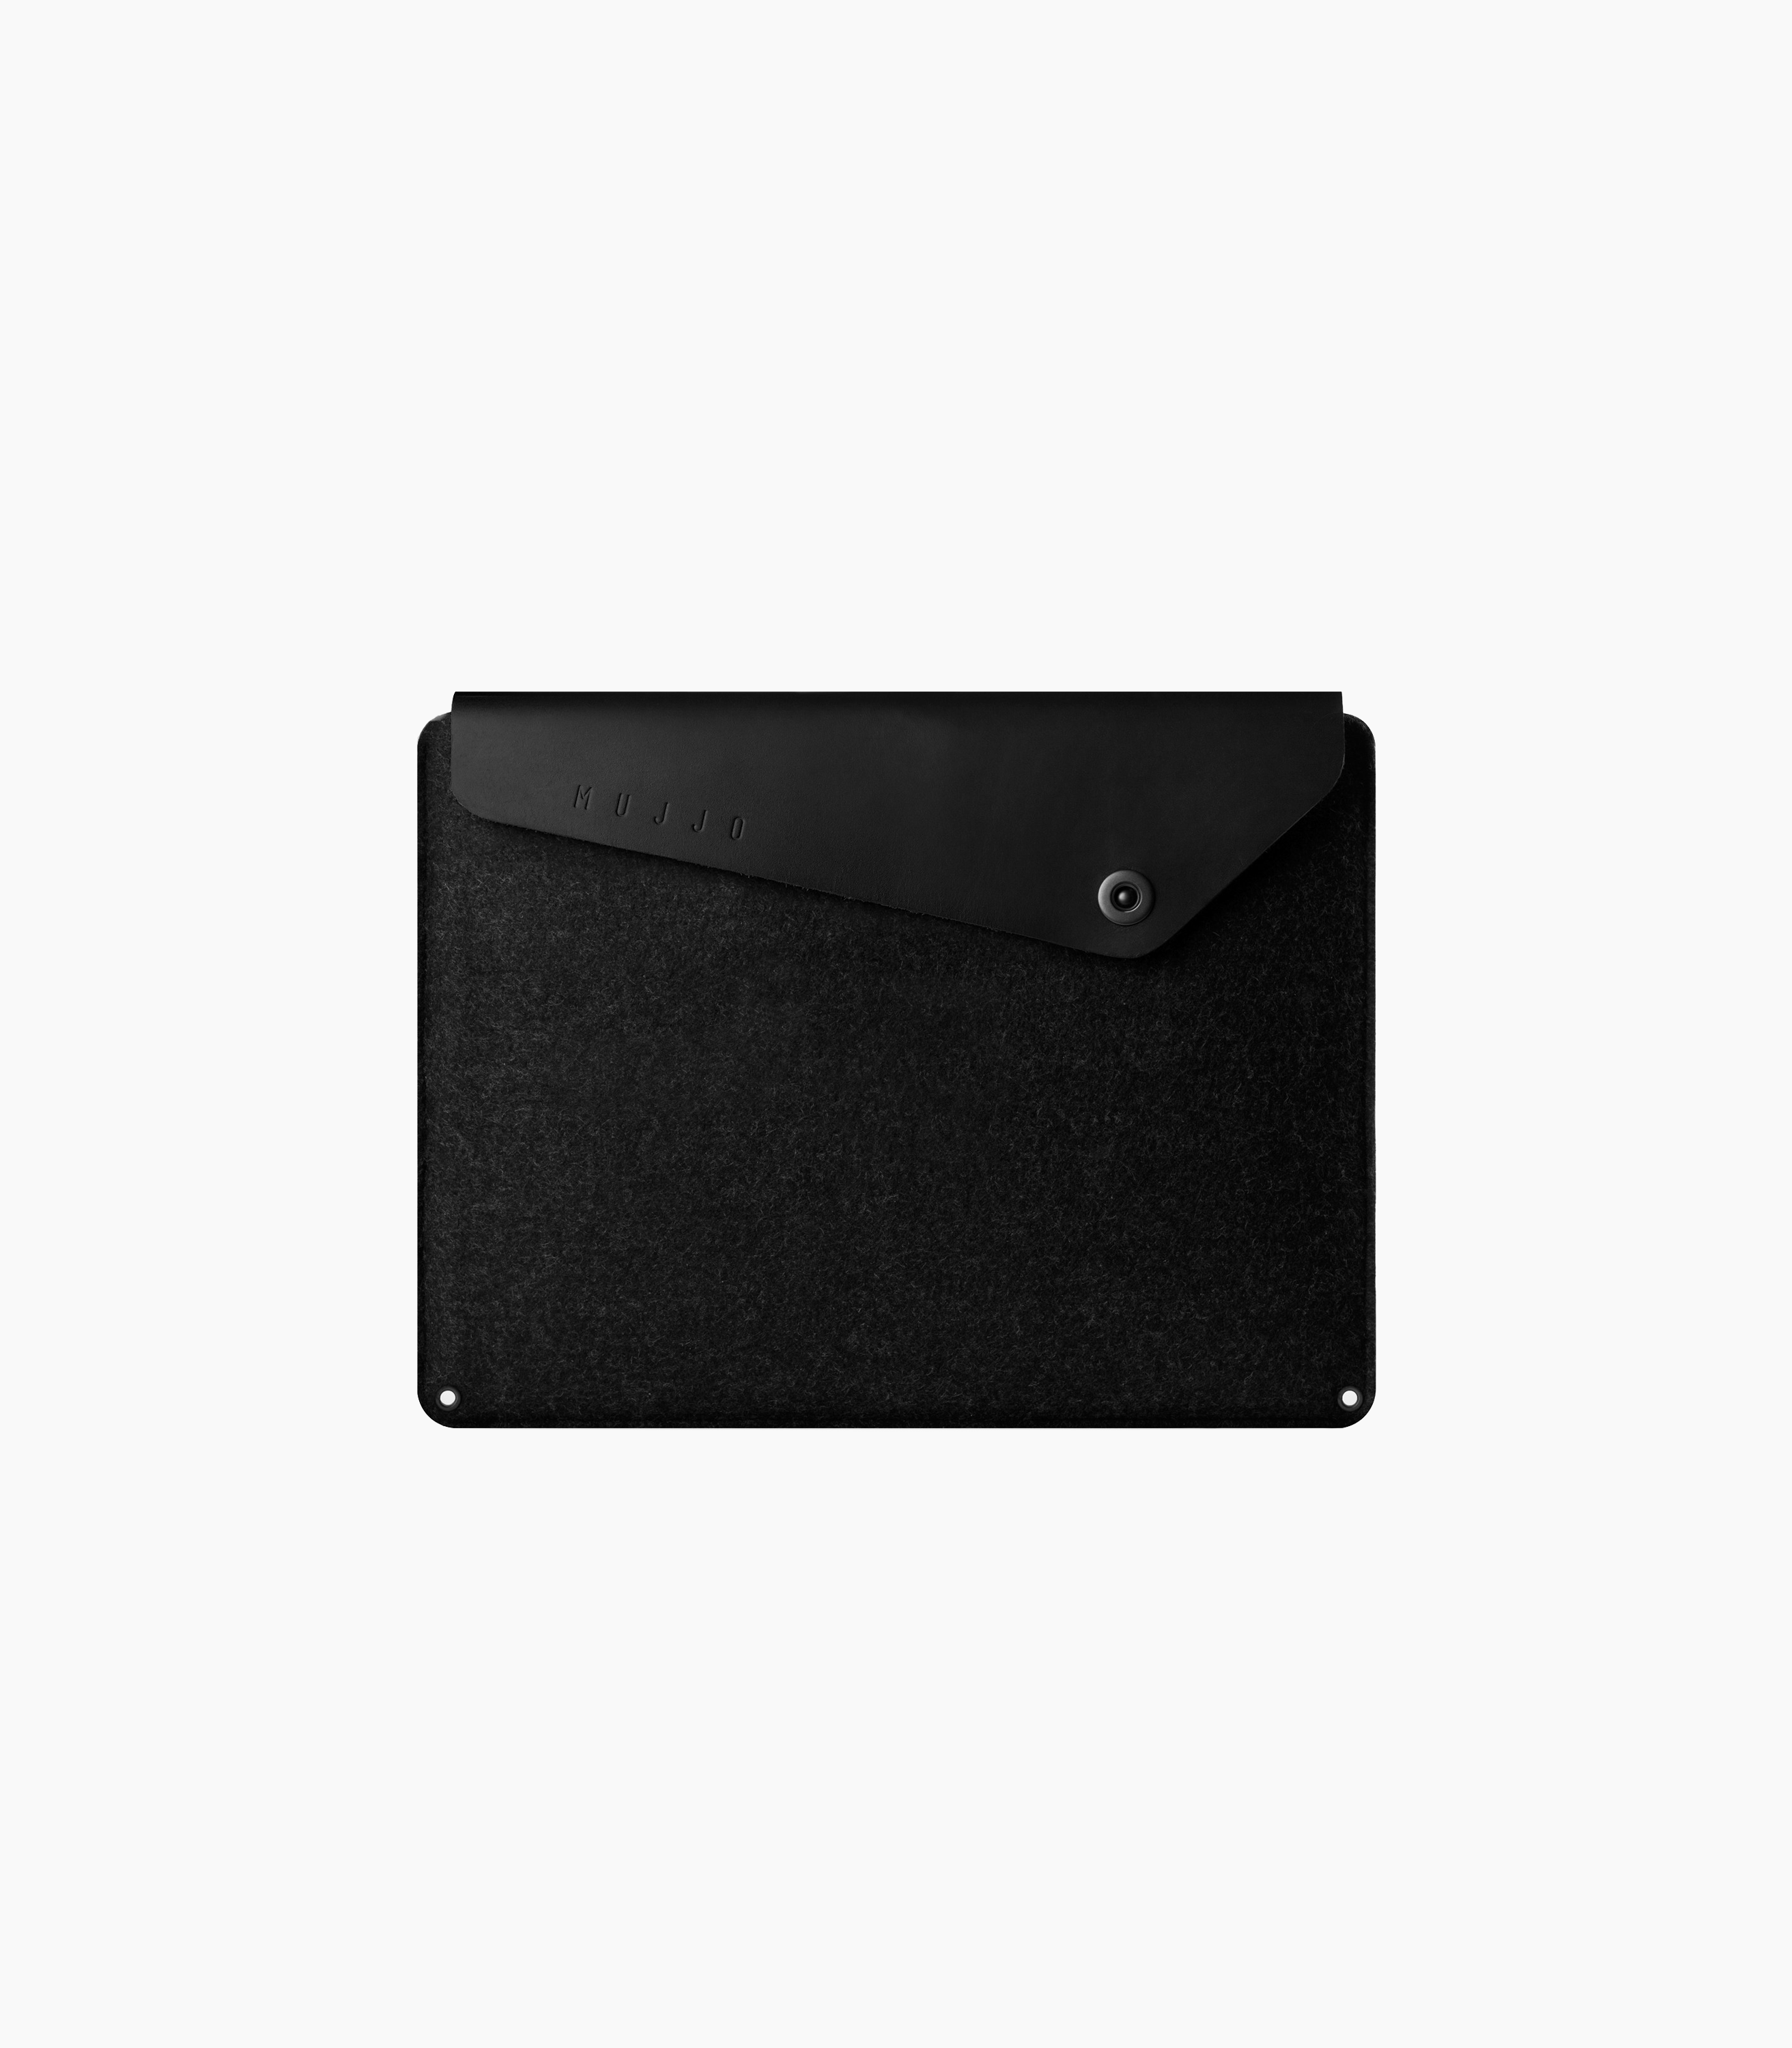 "Mujjo Sleeve for 13"" Macbook Air & Pro"